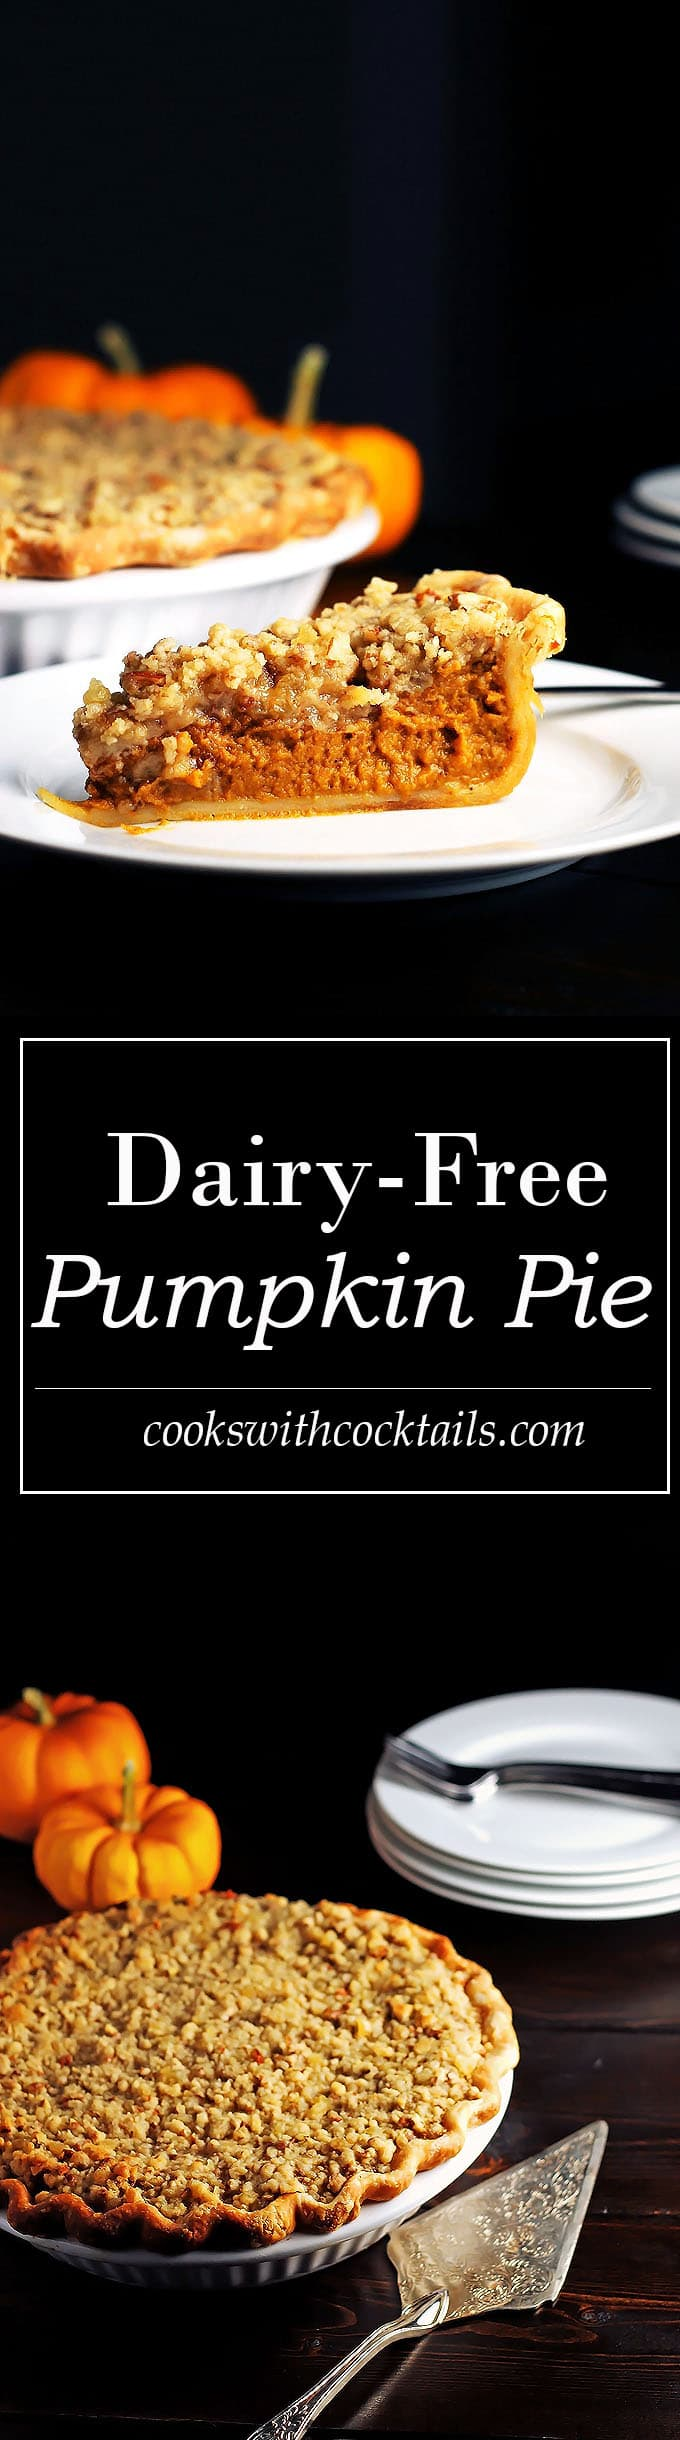 Dairy Free Pumpkin Pie with Streusel Topping